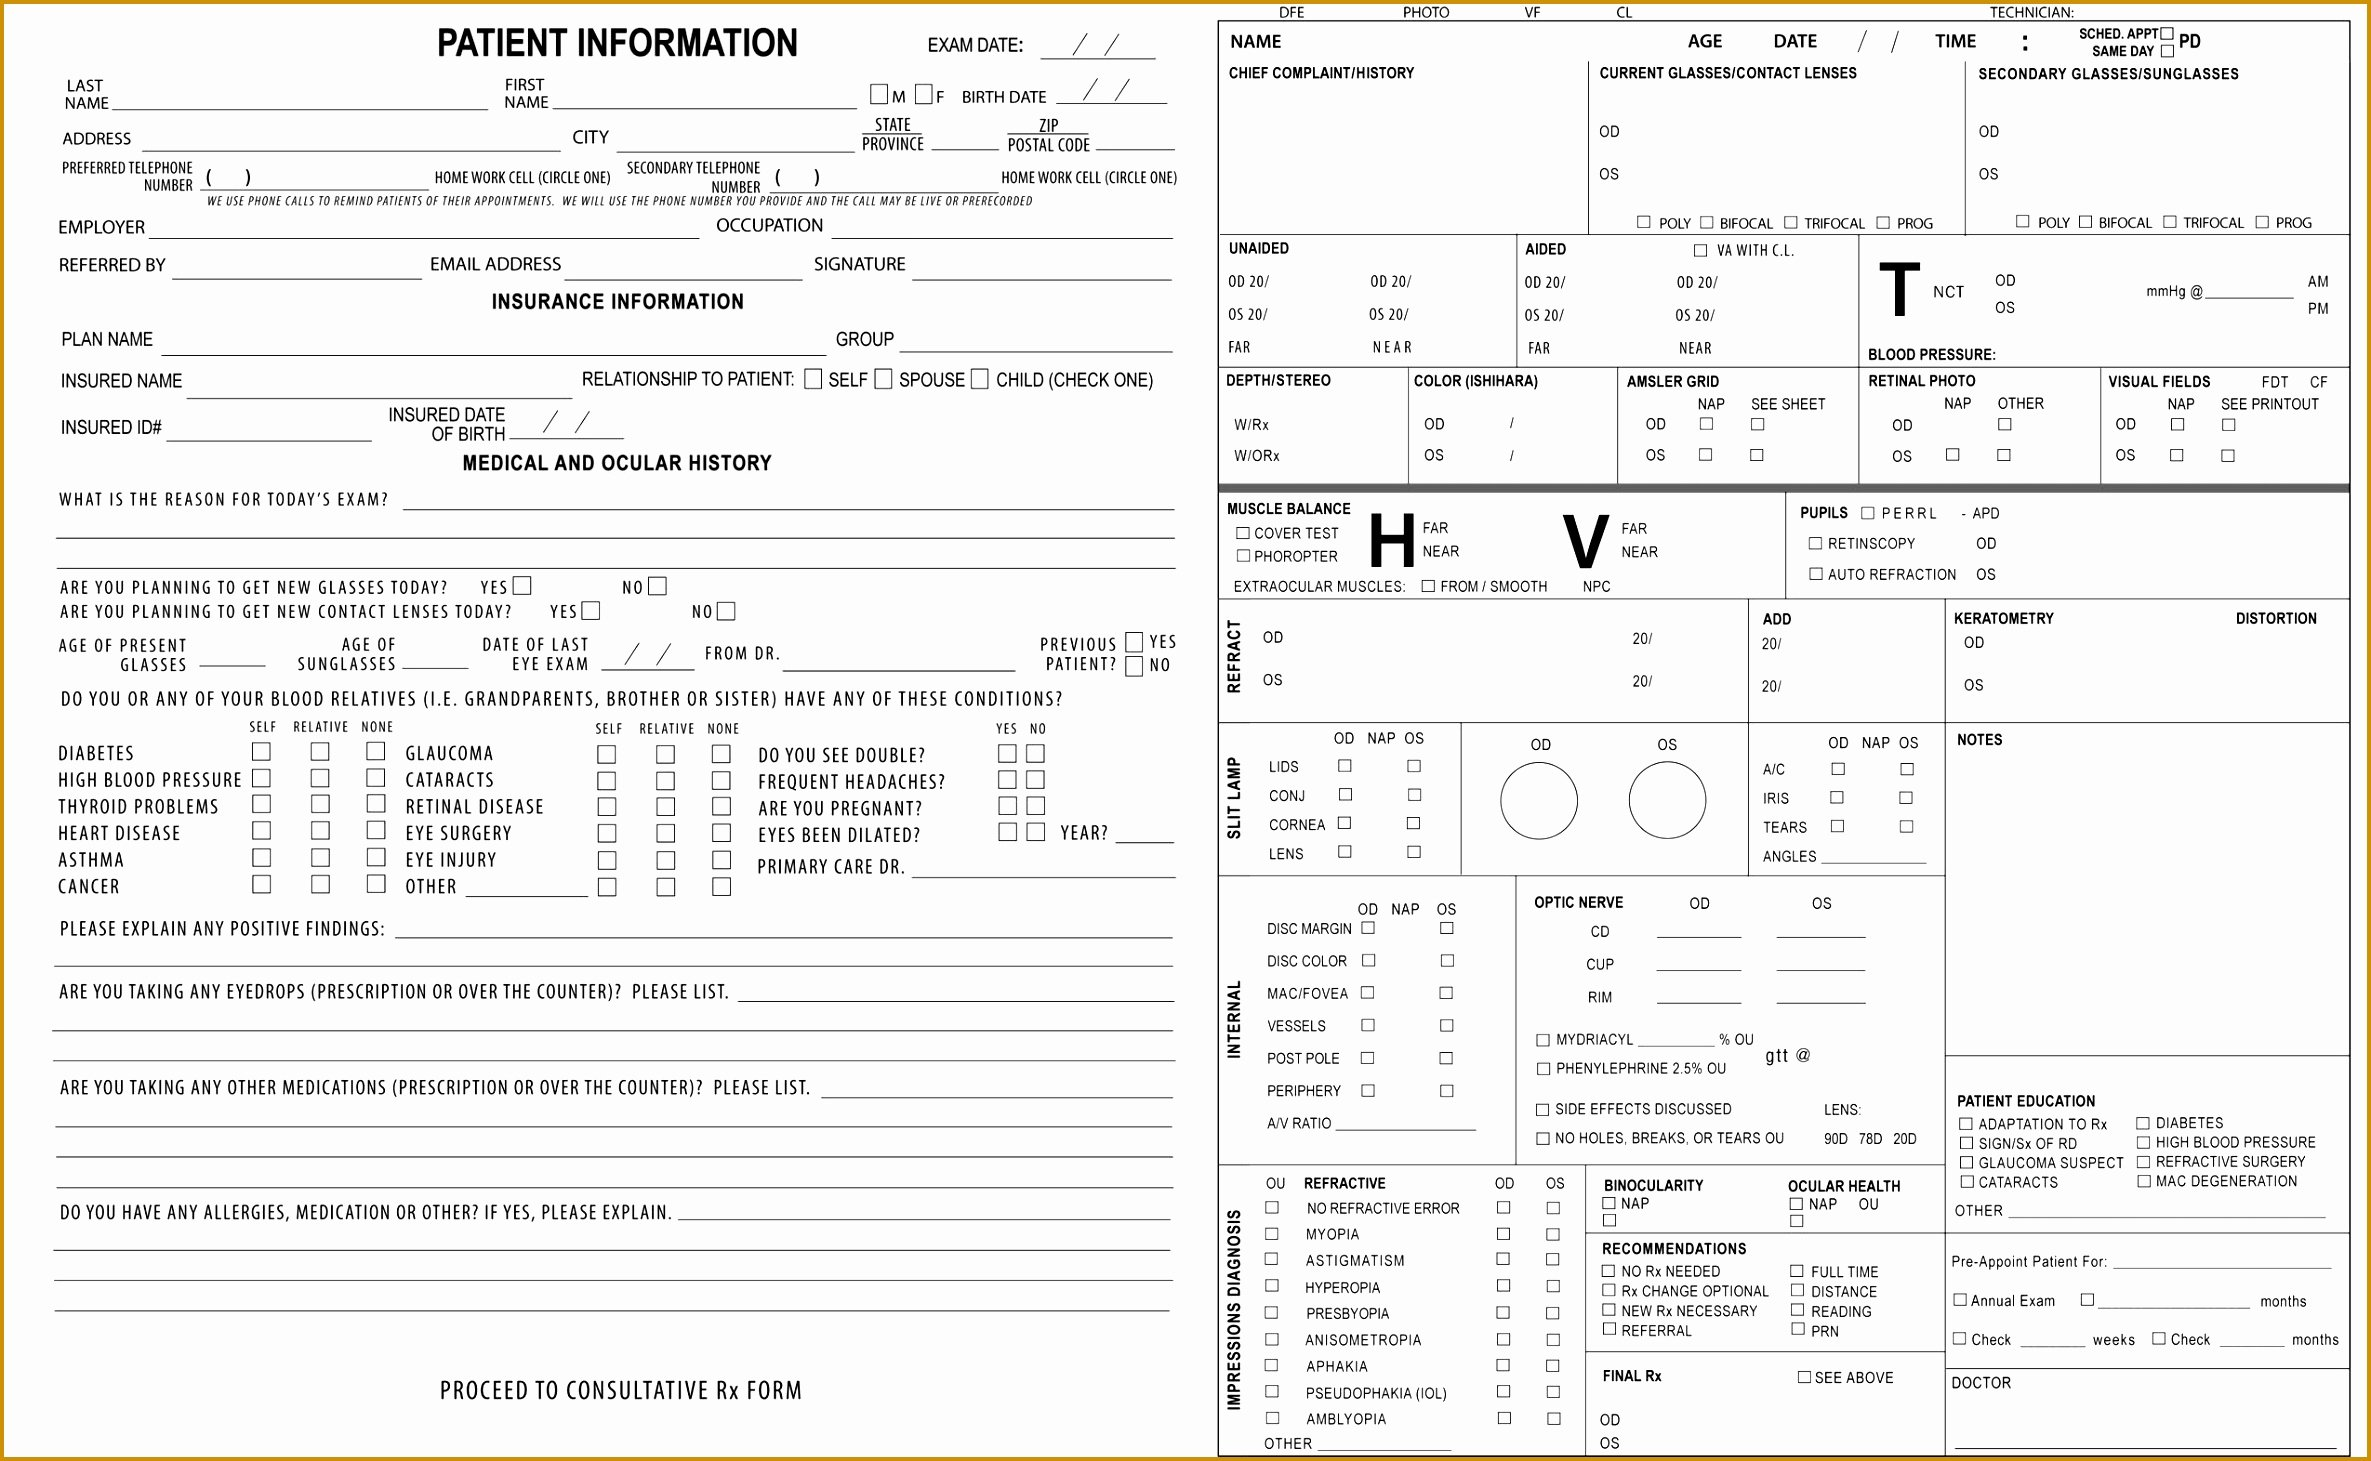 Patient Information Template Awesome 3 Template for Patient Information Sheet